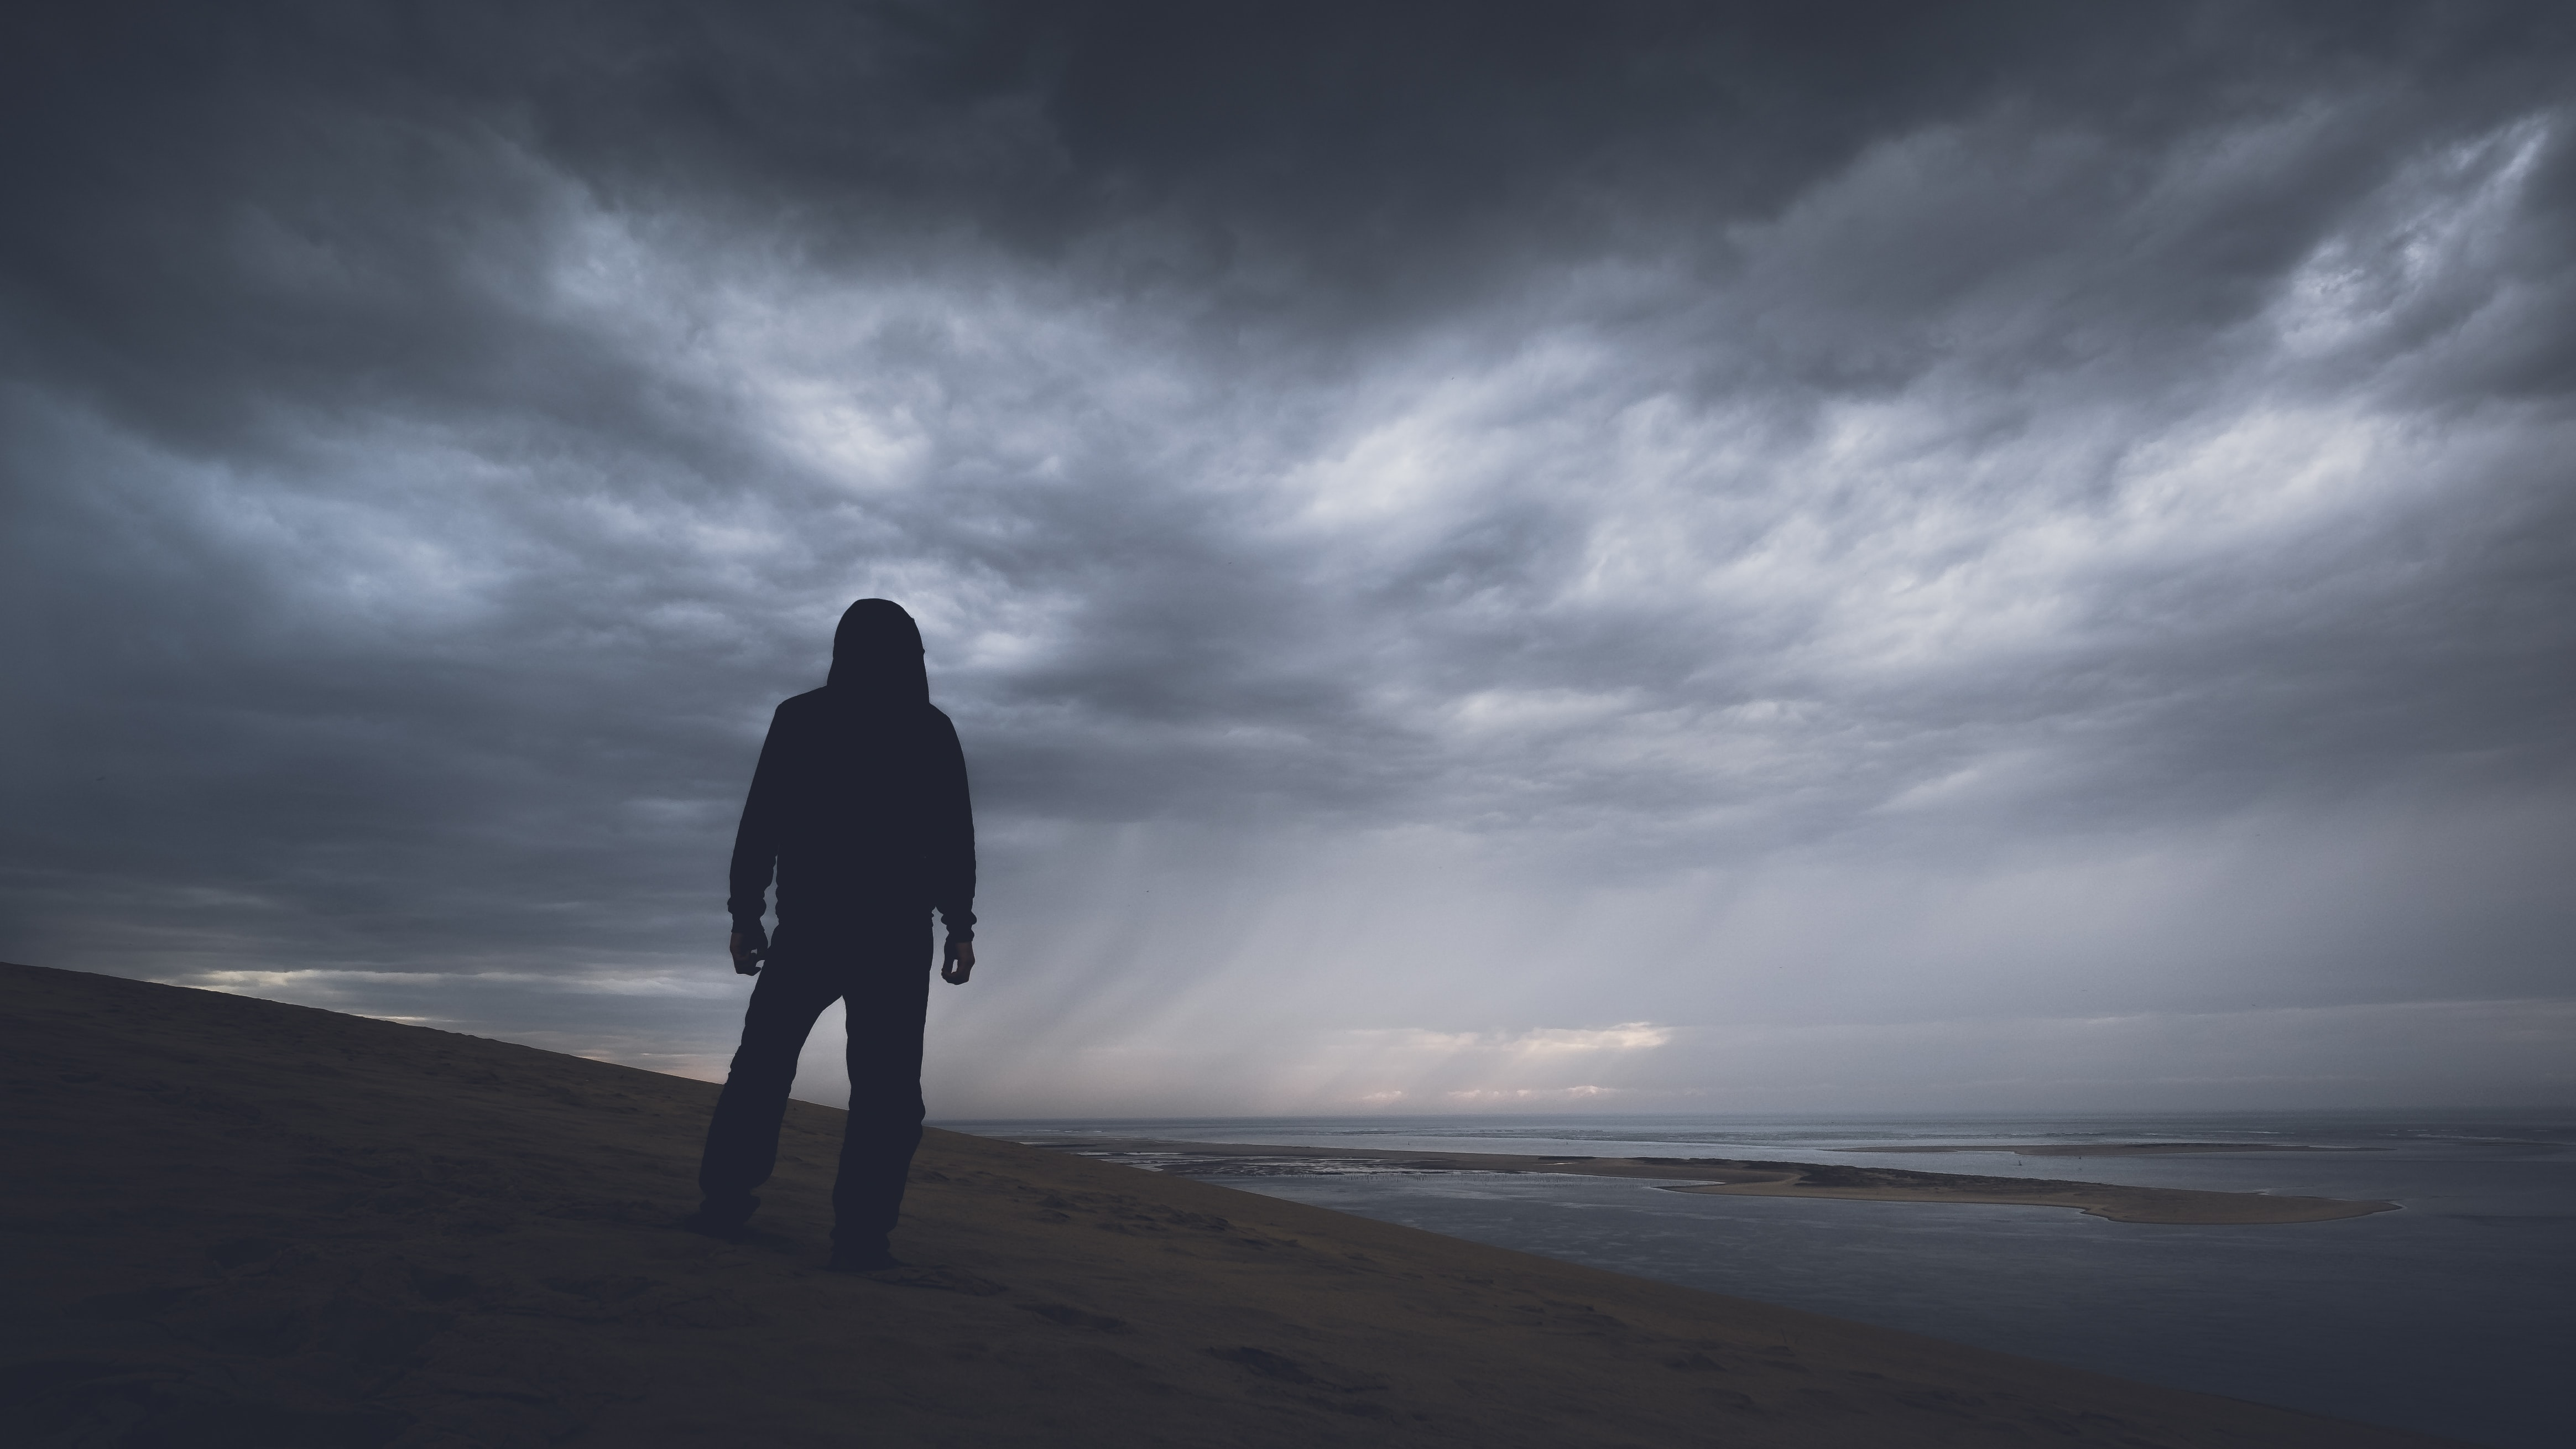 silhouette photography of person under gray clouds